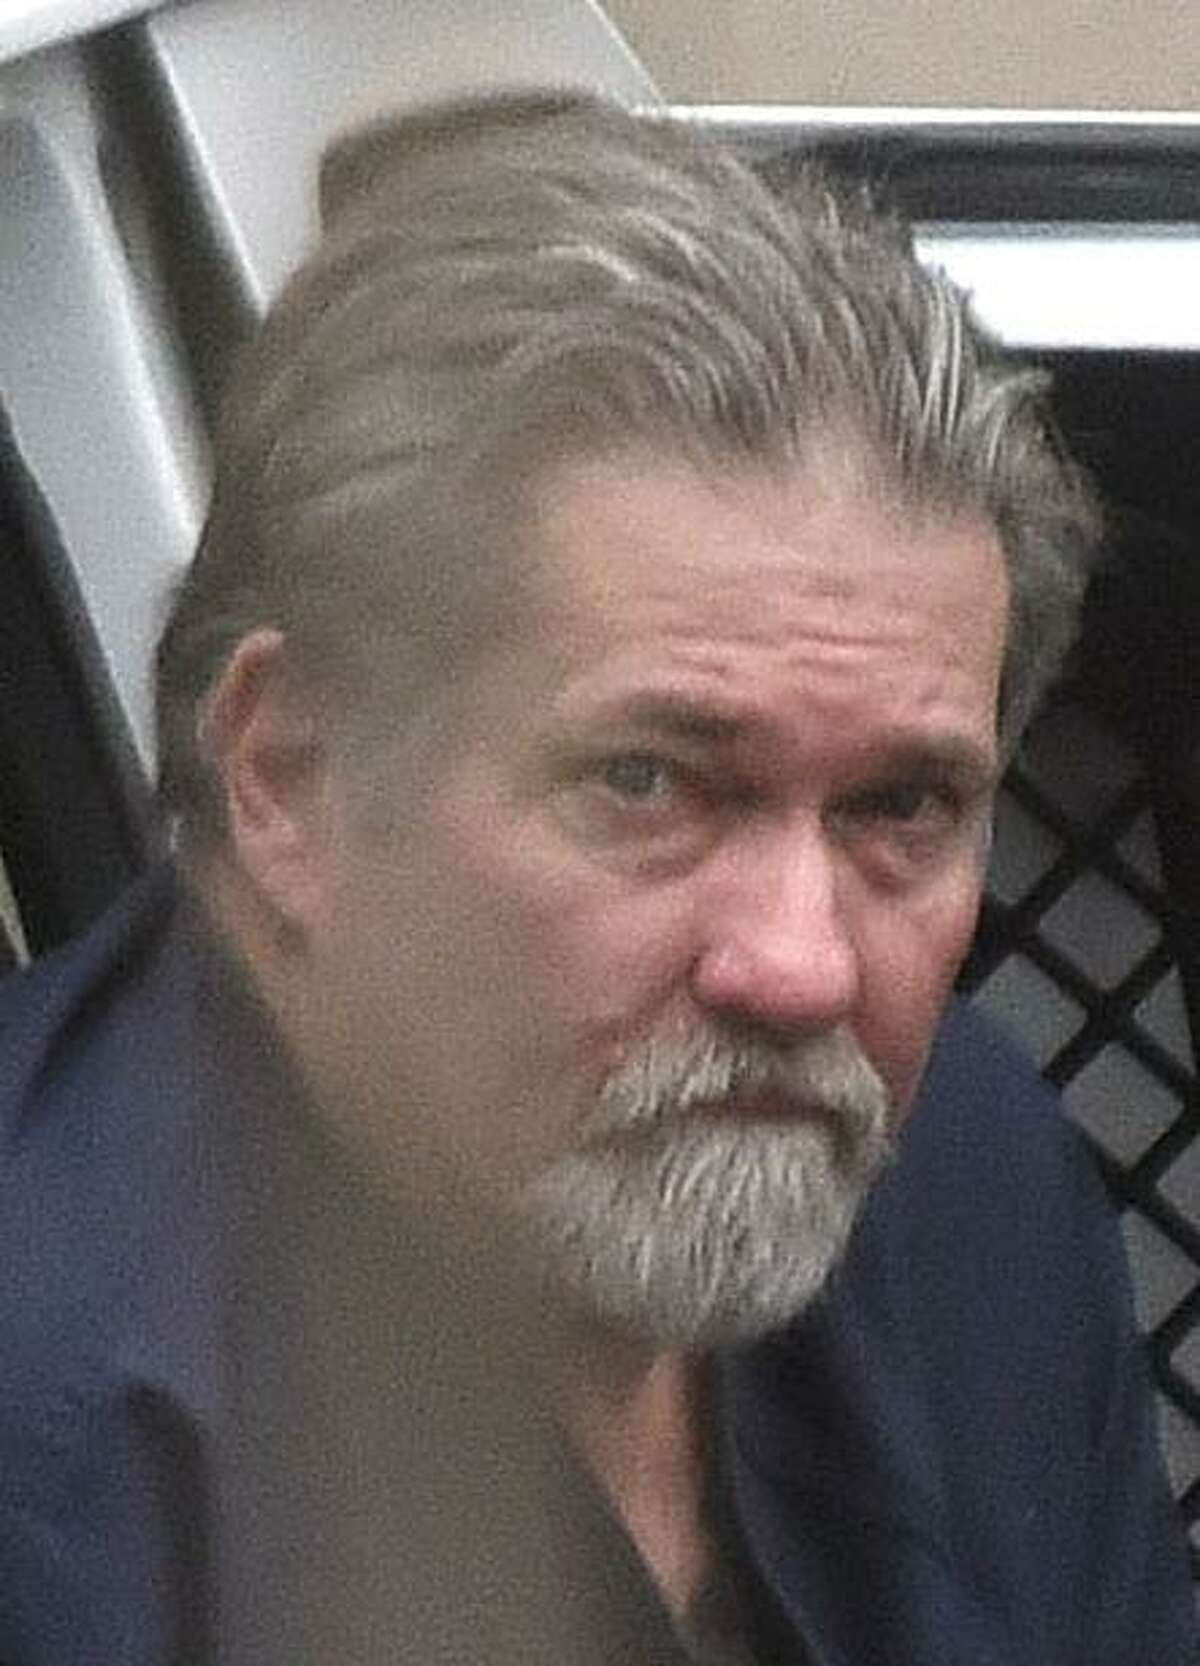 John Xavier Portillo, former national vice president of the Bandidos, arrives at Feb. 27 the San Antonio federal courthouse for the first day of his racketeering trial.